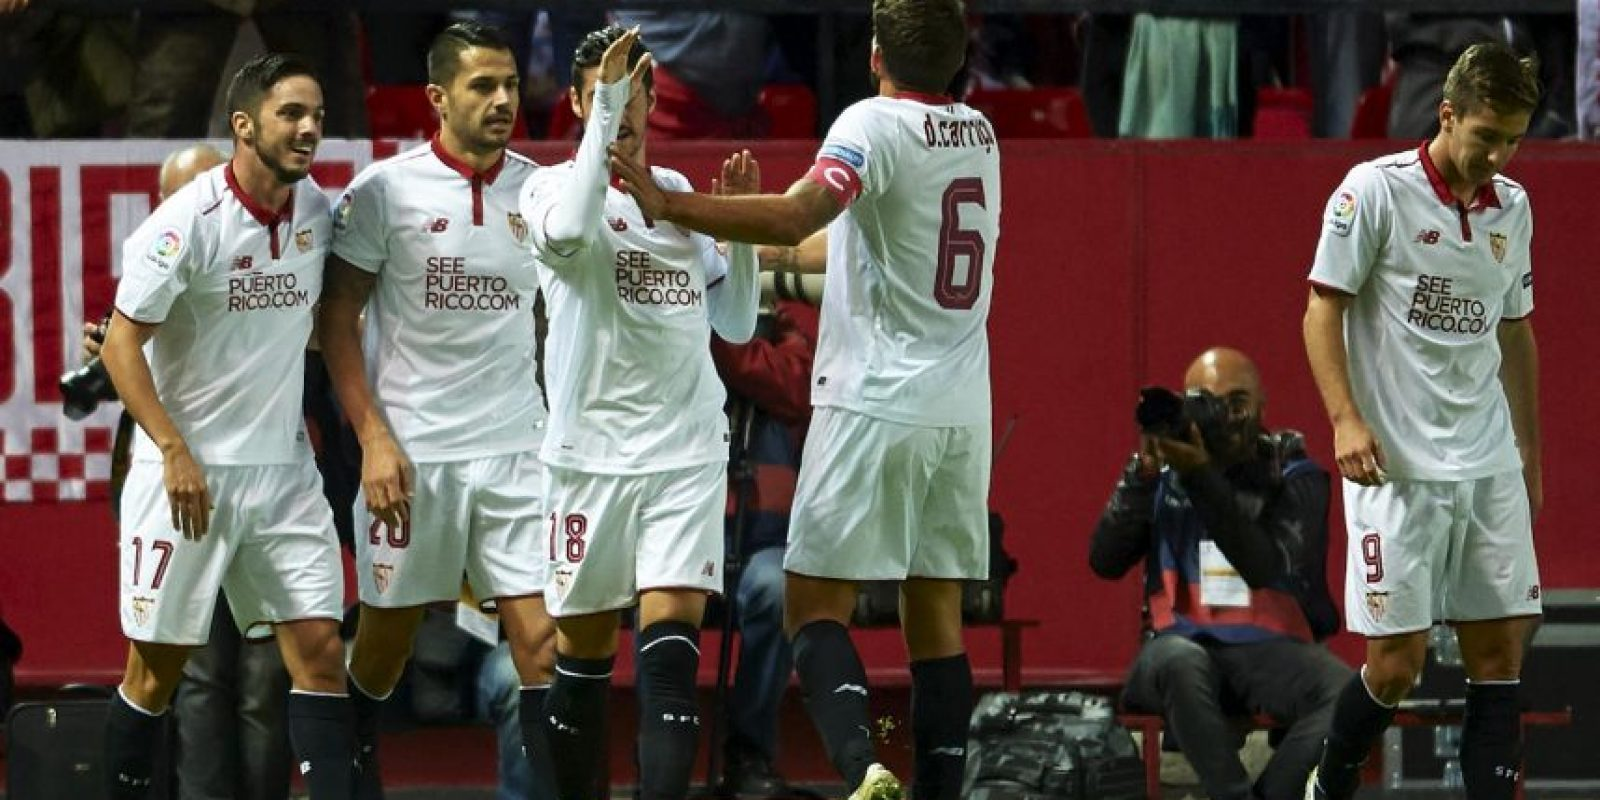 Sevilla puede sellar su paso a los octavos de final de la Champions League Foto: Getty Images